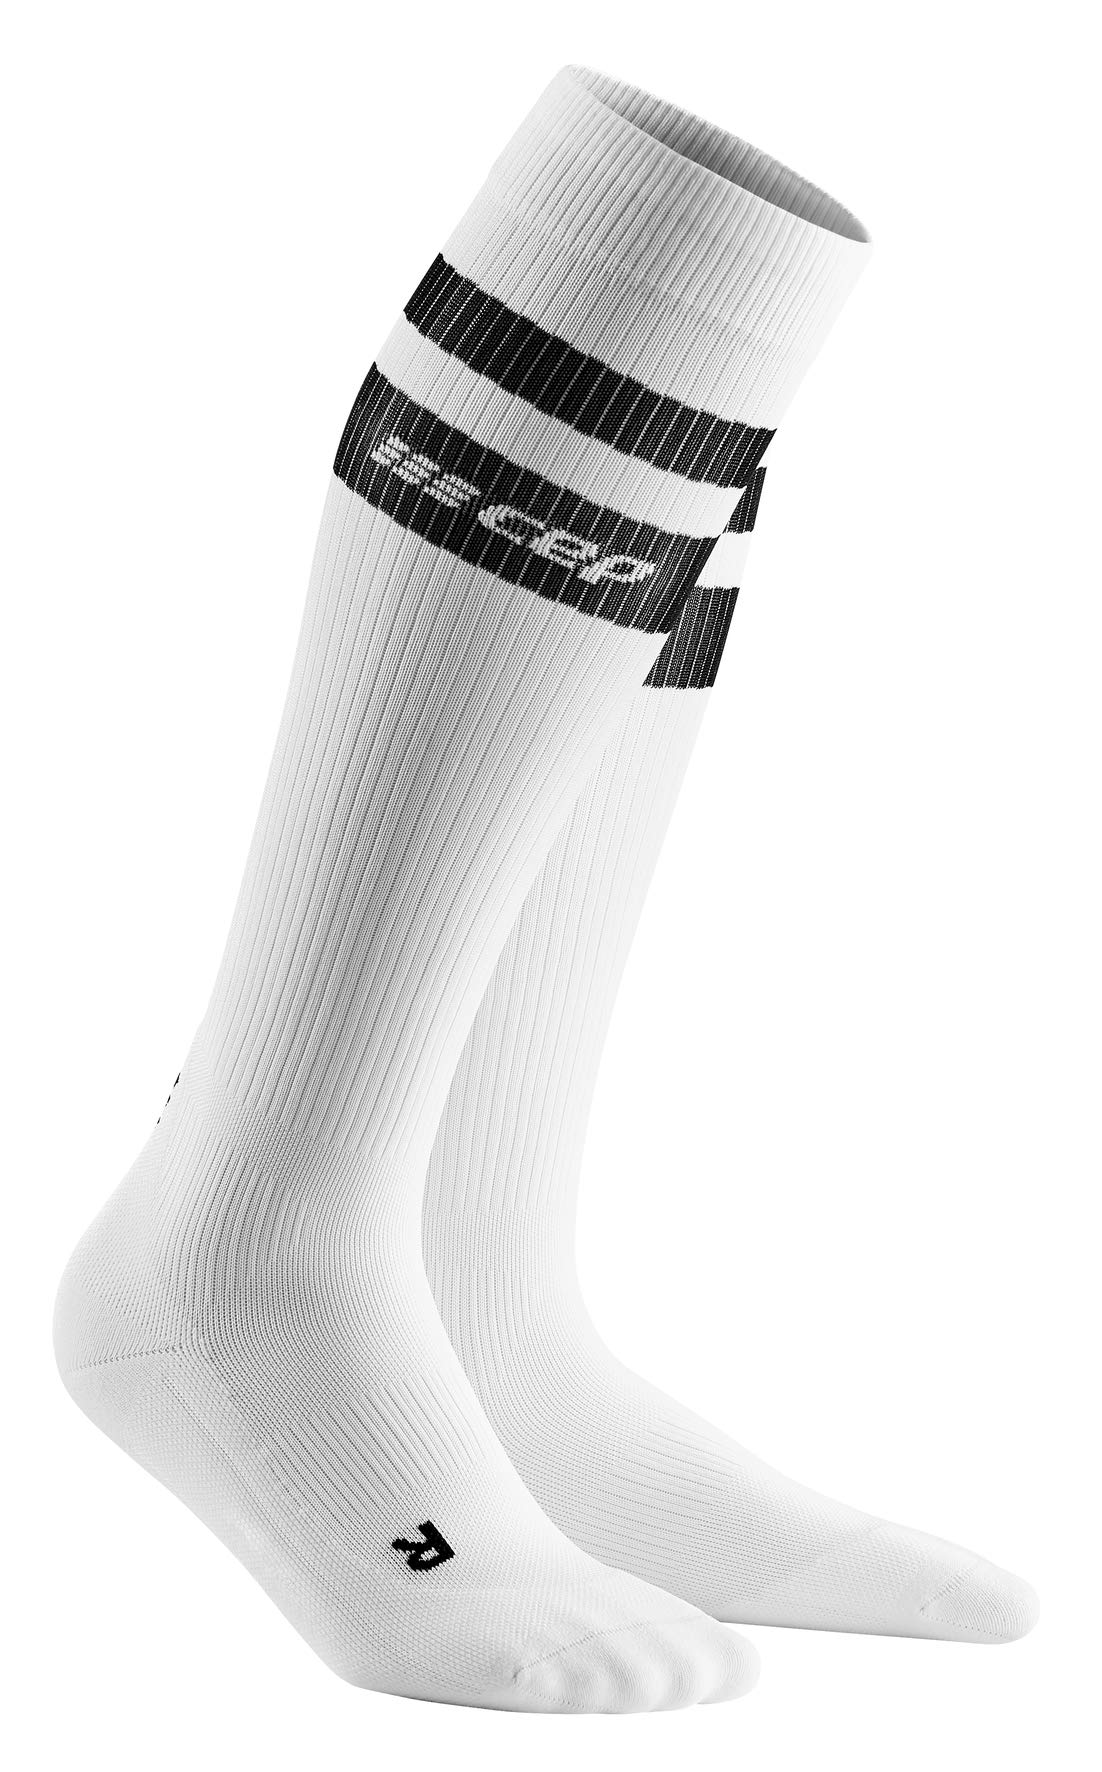 Men's Compression Socks - CEP 80's Compression Tall Socks, White/Black 5 by CEP